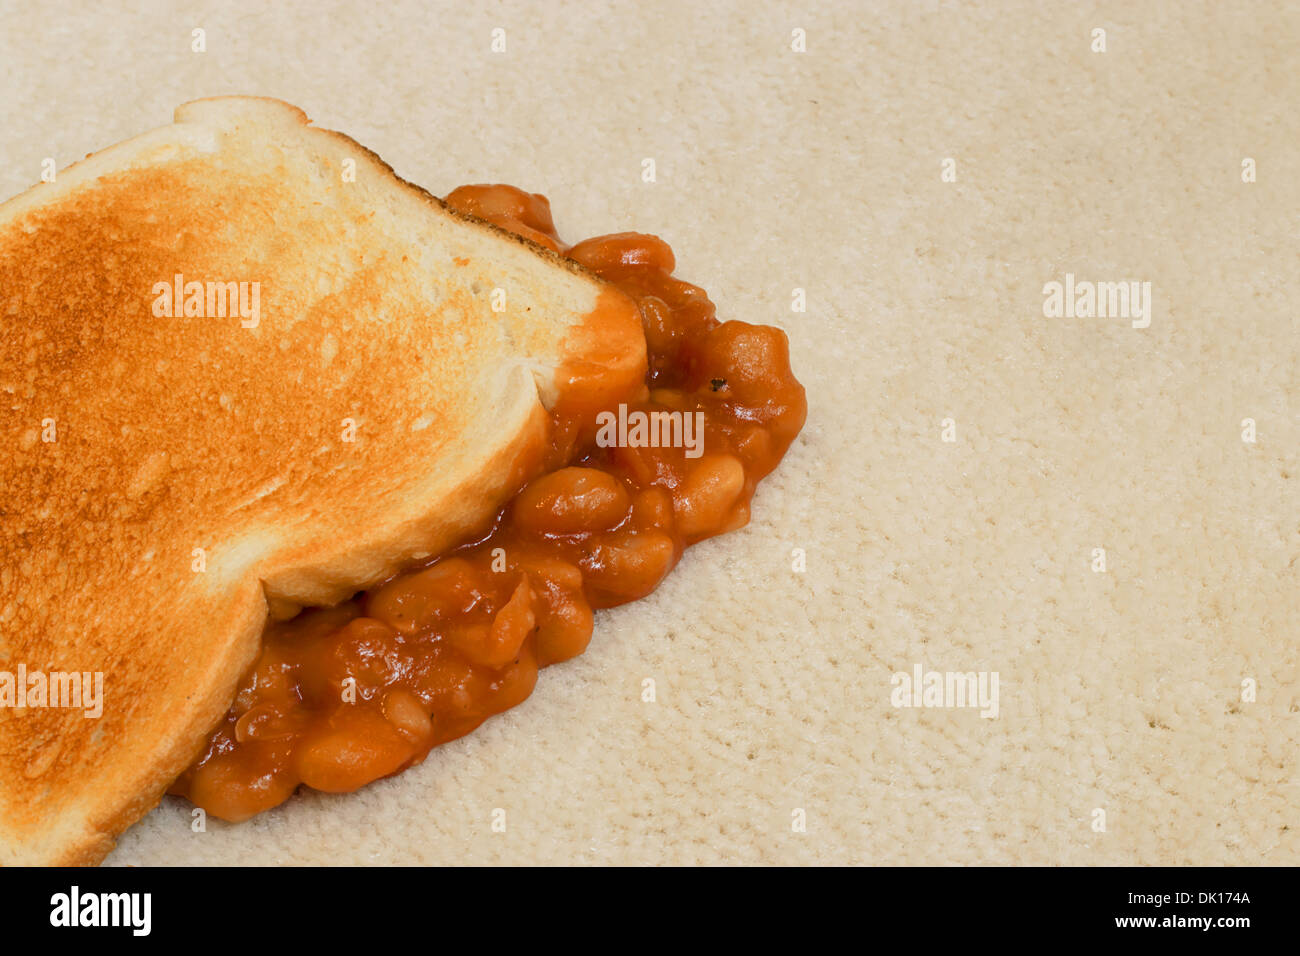 Baked Beans on toast accidentally dropped and creating a carpet stain on beige pile floor covering - Stock Image